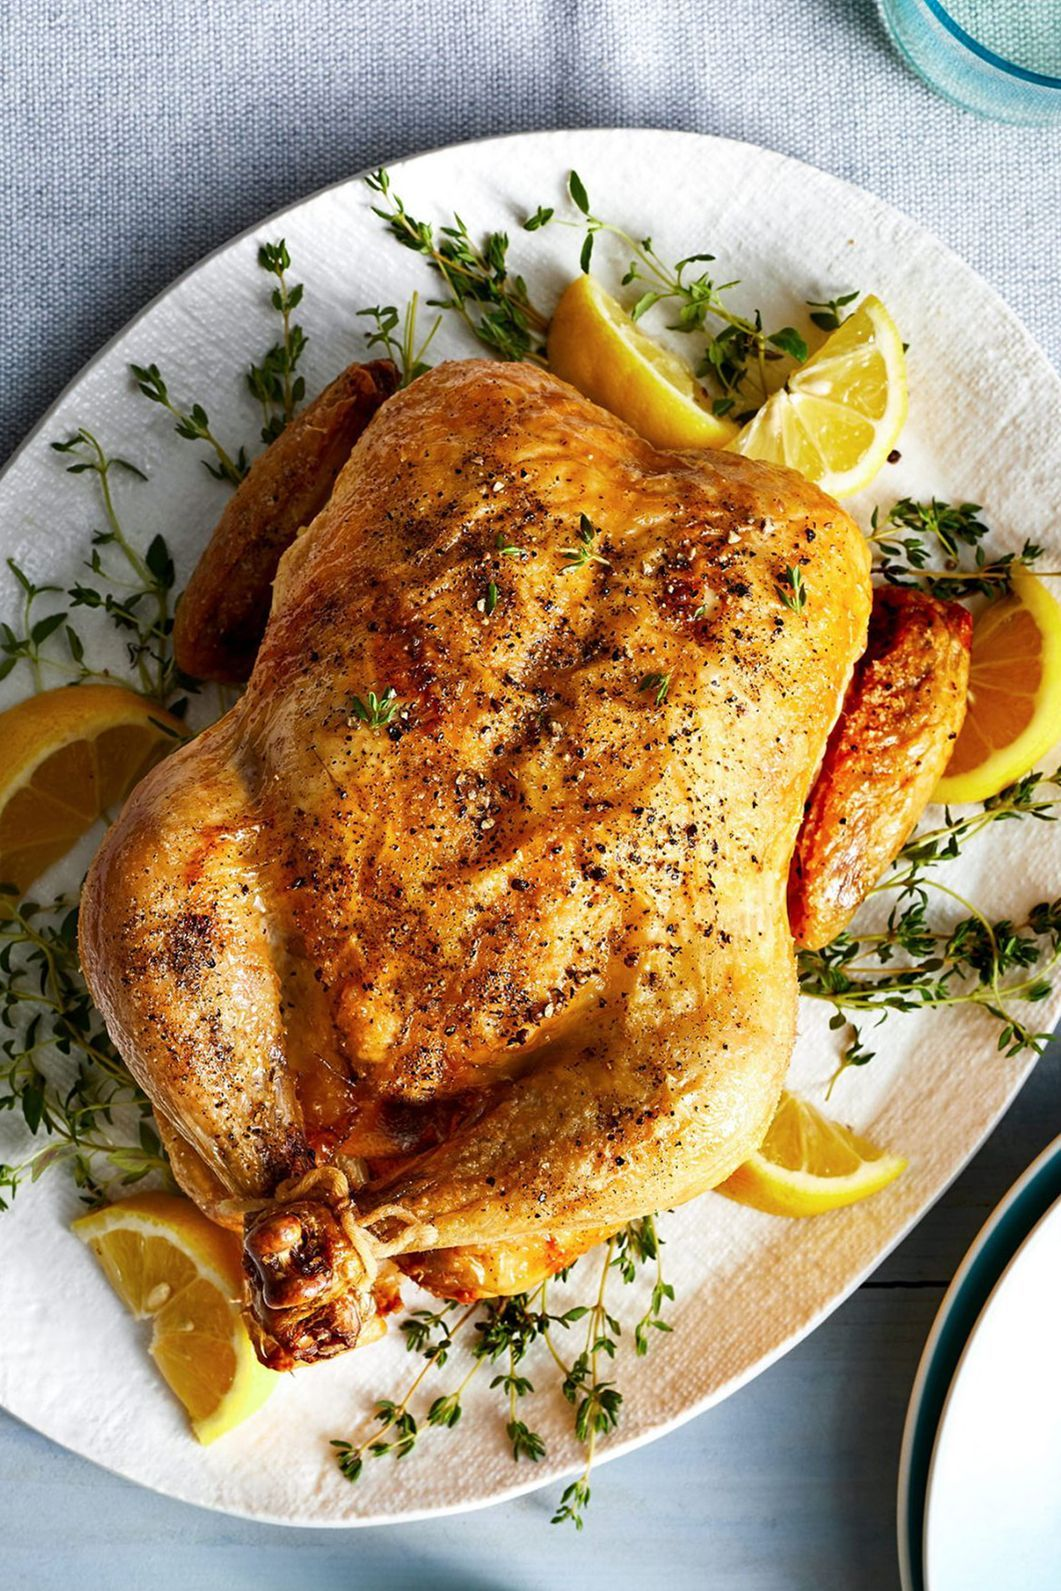 One bite of this whole air-fryer chicken and you'll be amazed at how much it tastes like your favorite store-bought rotisserie chicken. #airfryerrecipes #thebestairfryerrecipes #easyairfryerrecipes #chicken #bhg